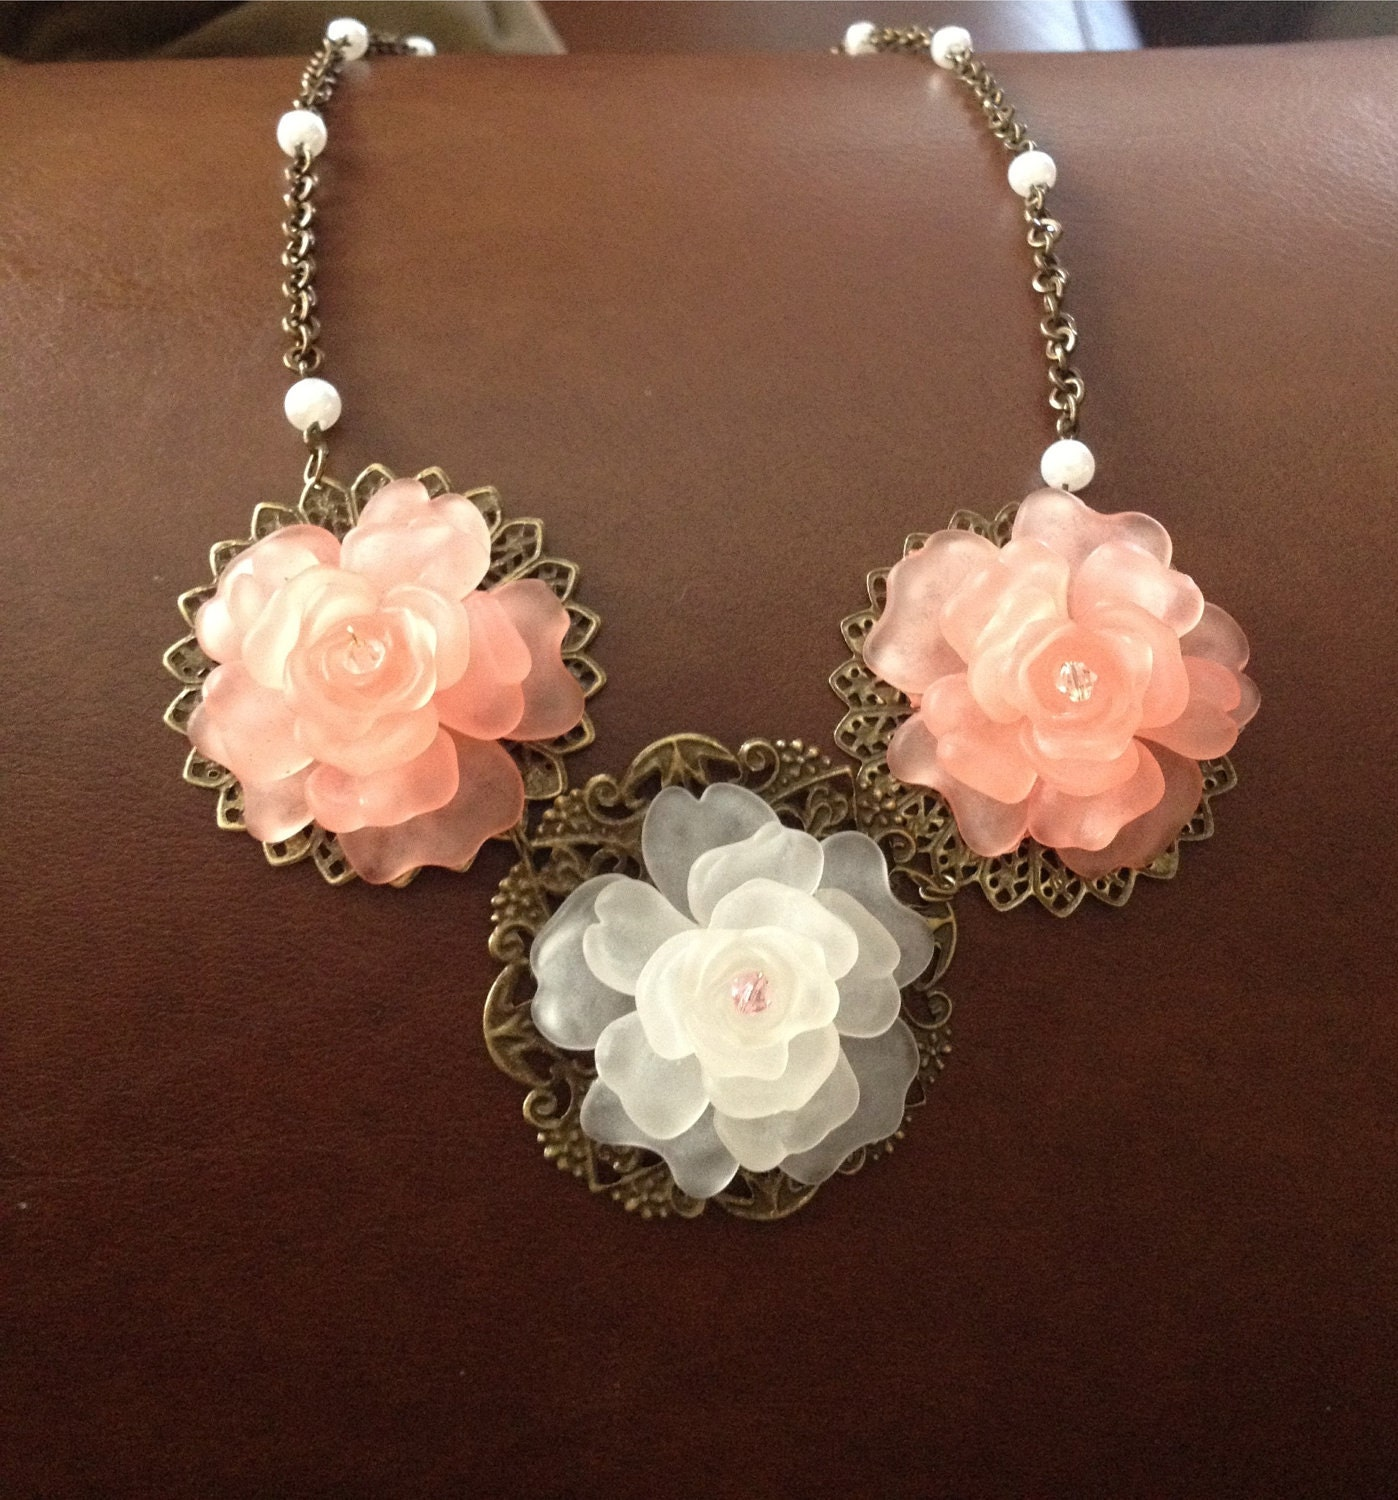 Vintage looking wire flower necklace